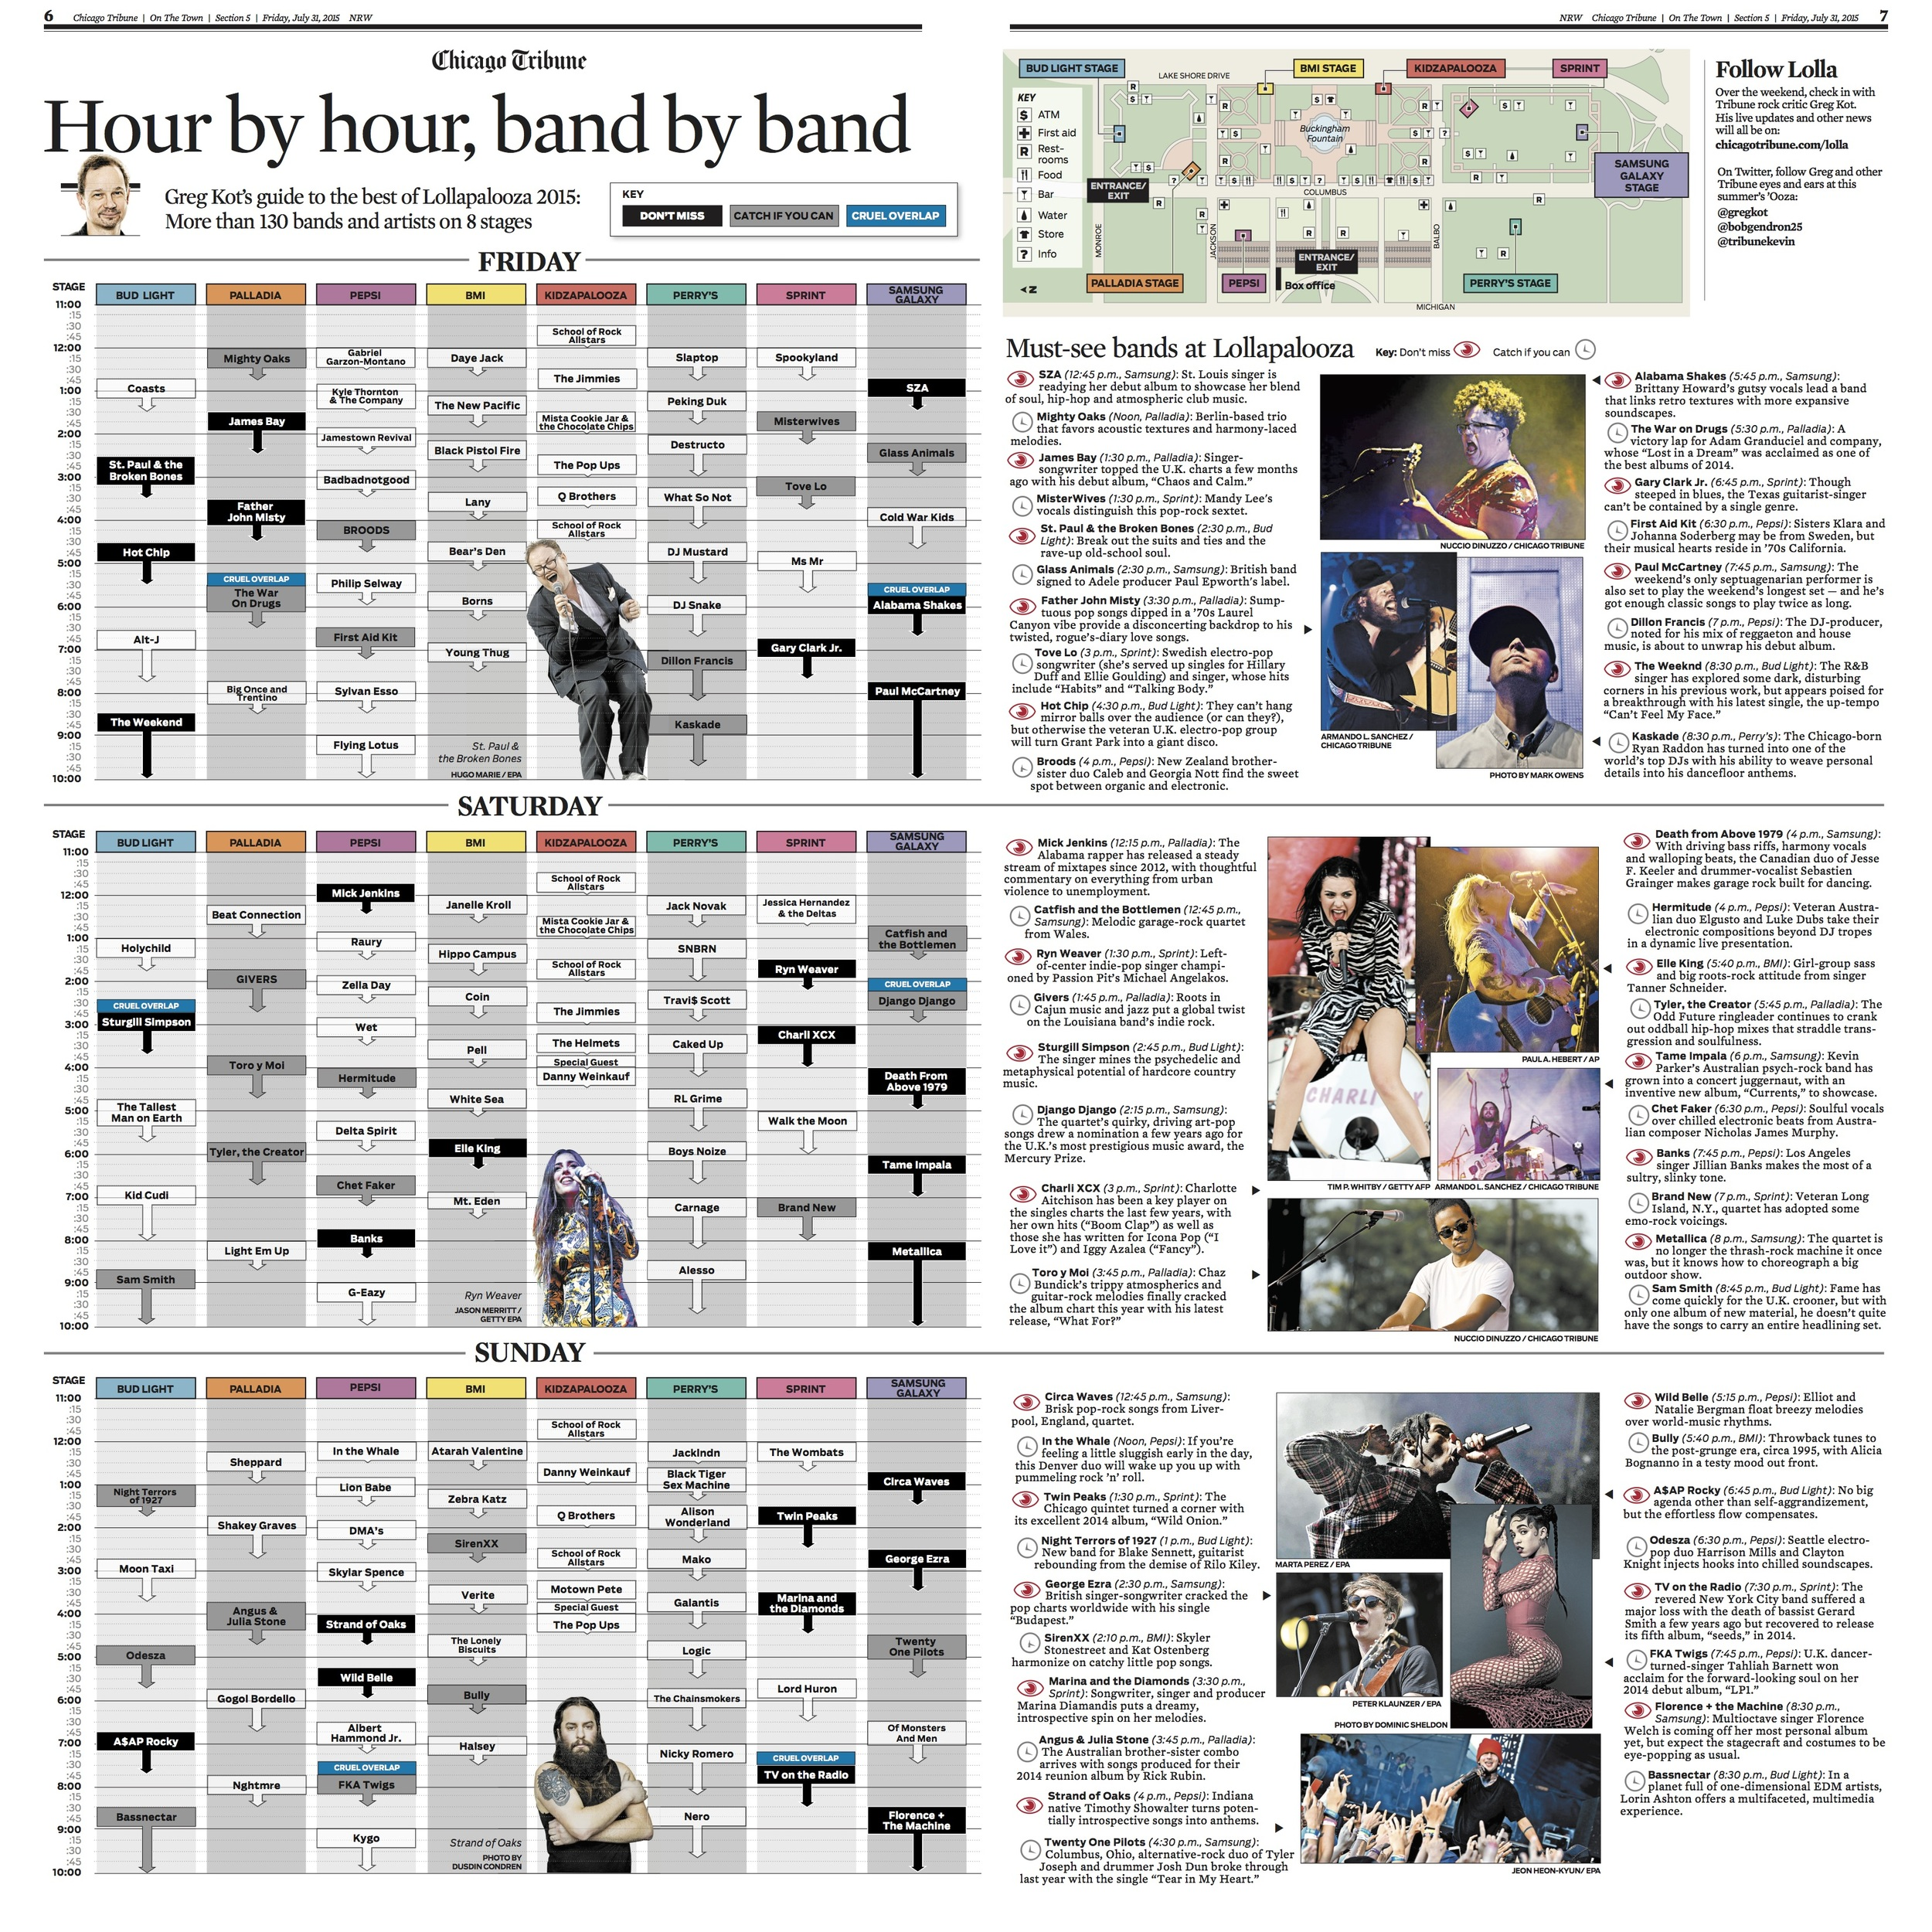 July 31, 2015 / Chicago Tribune